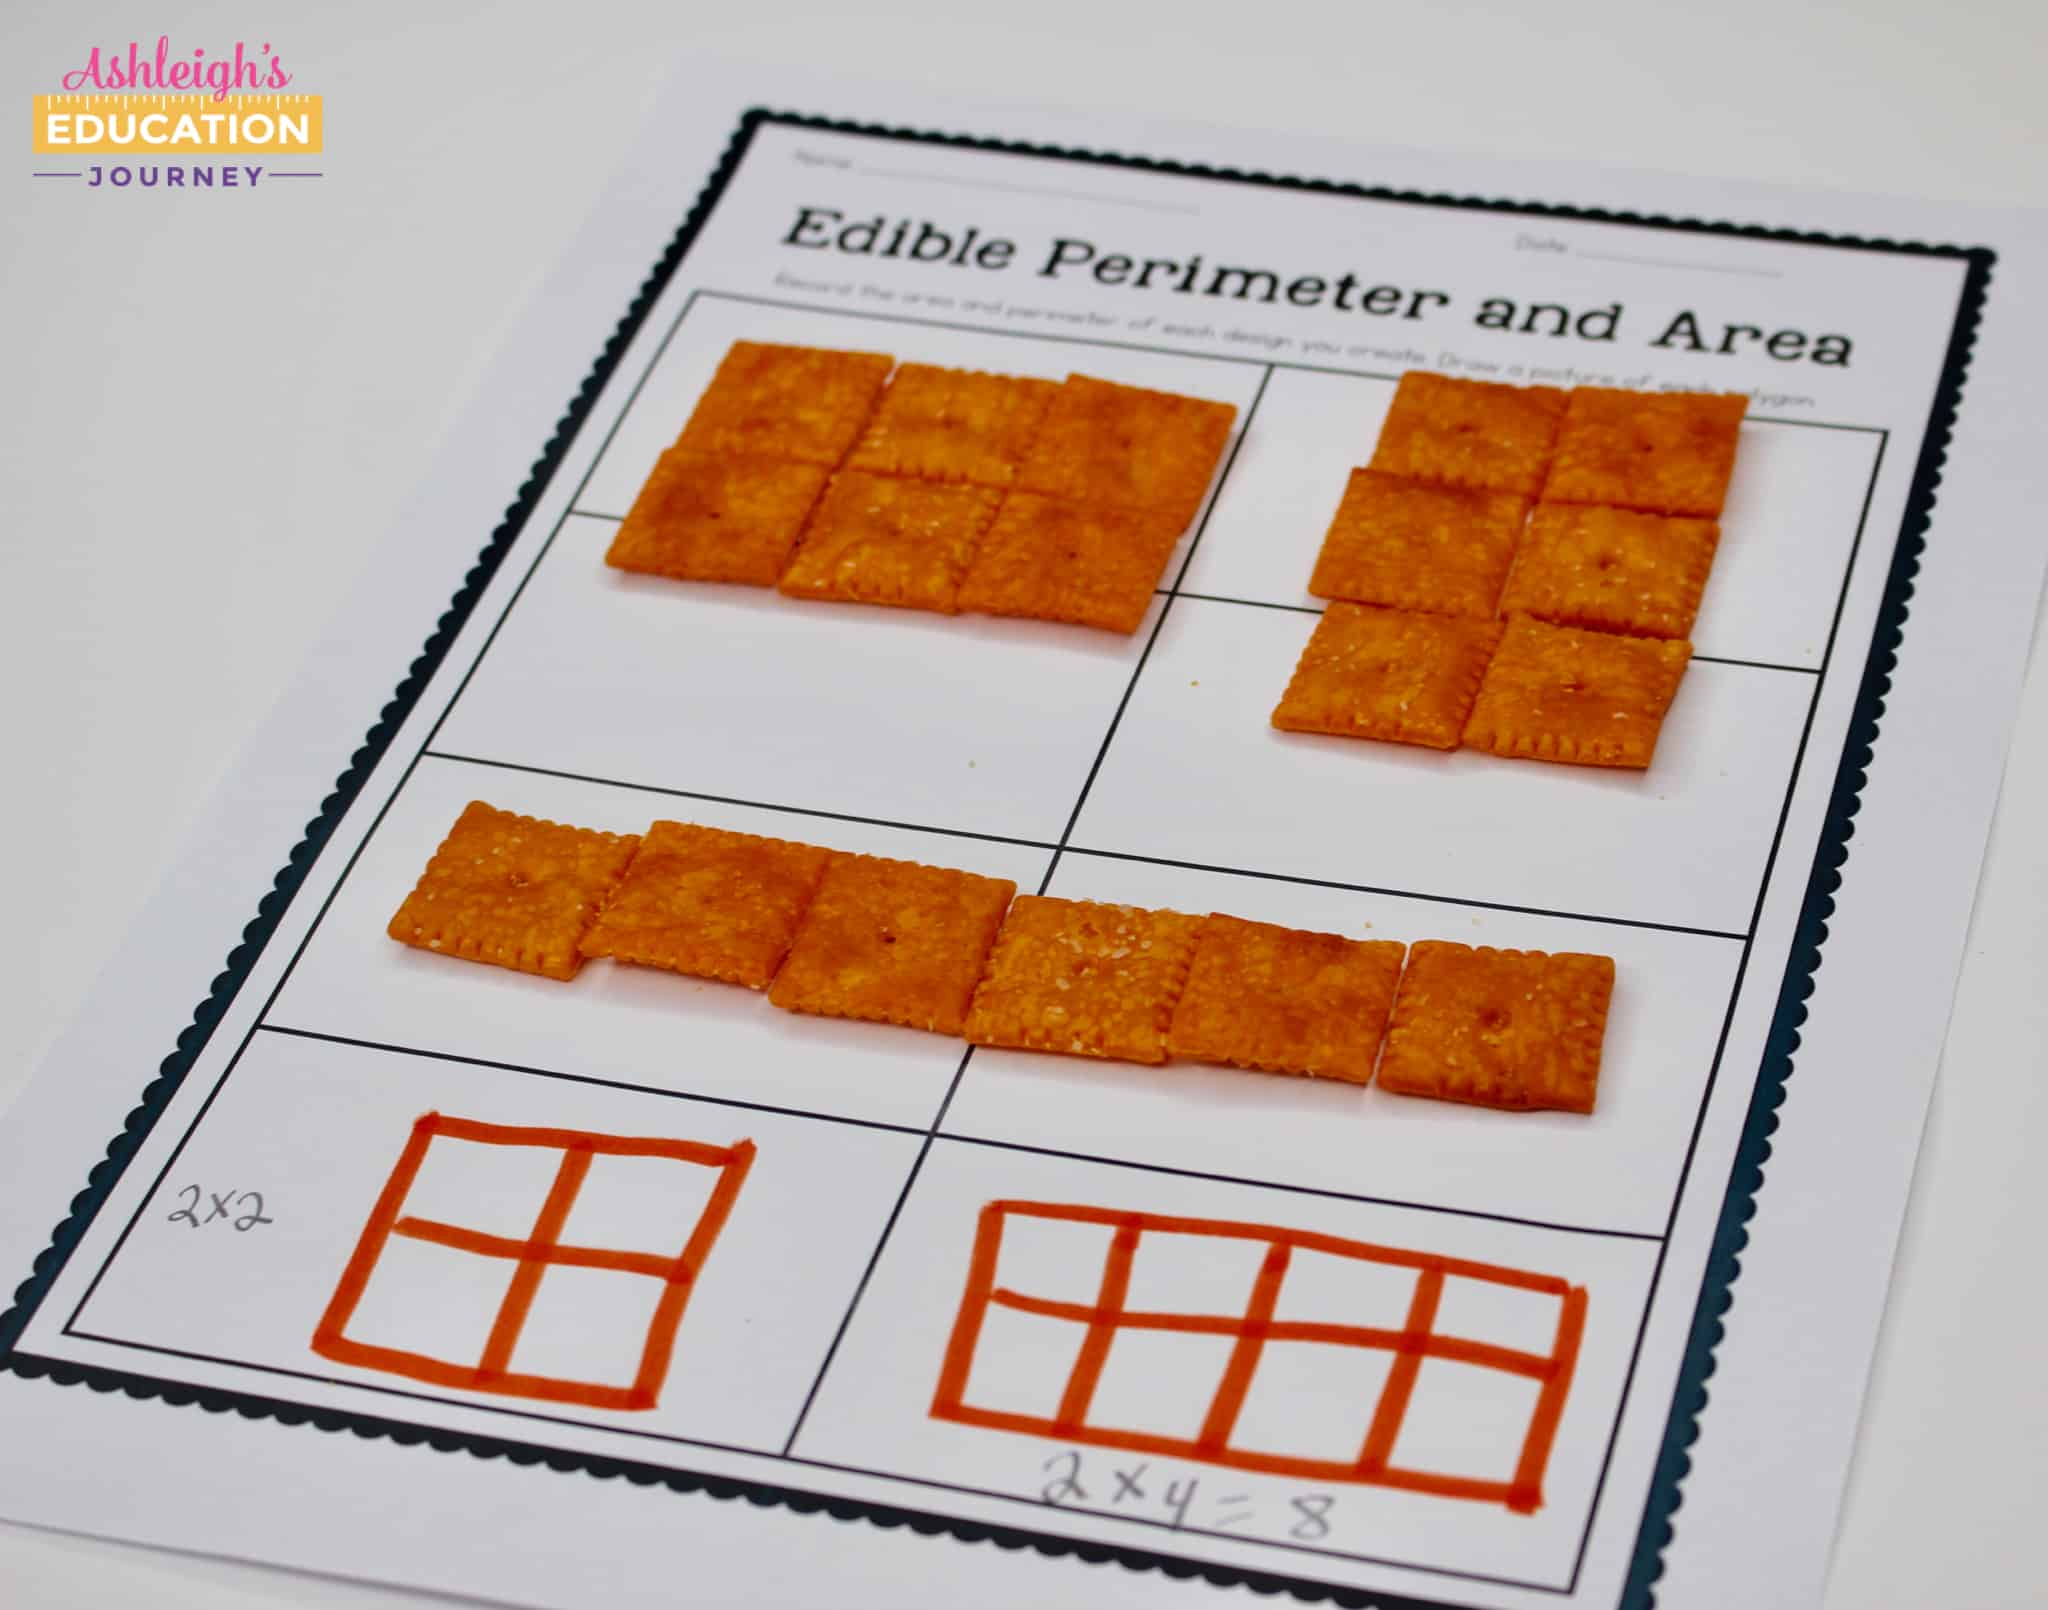 Edible Perimiter and Area worksheet with Cheez-It crackers, used to help with teaching area and perimeter.